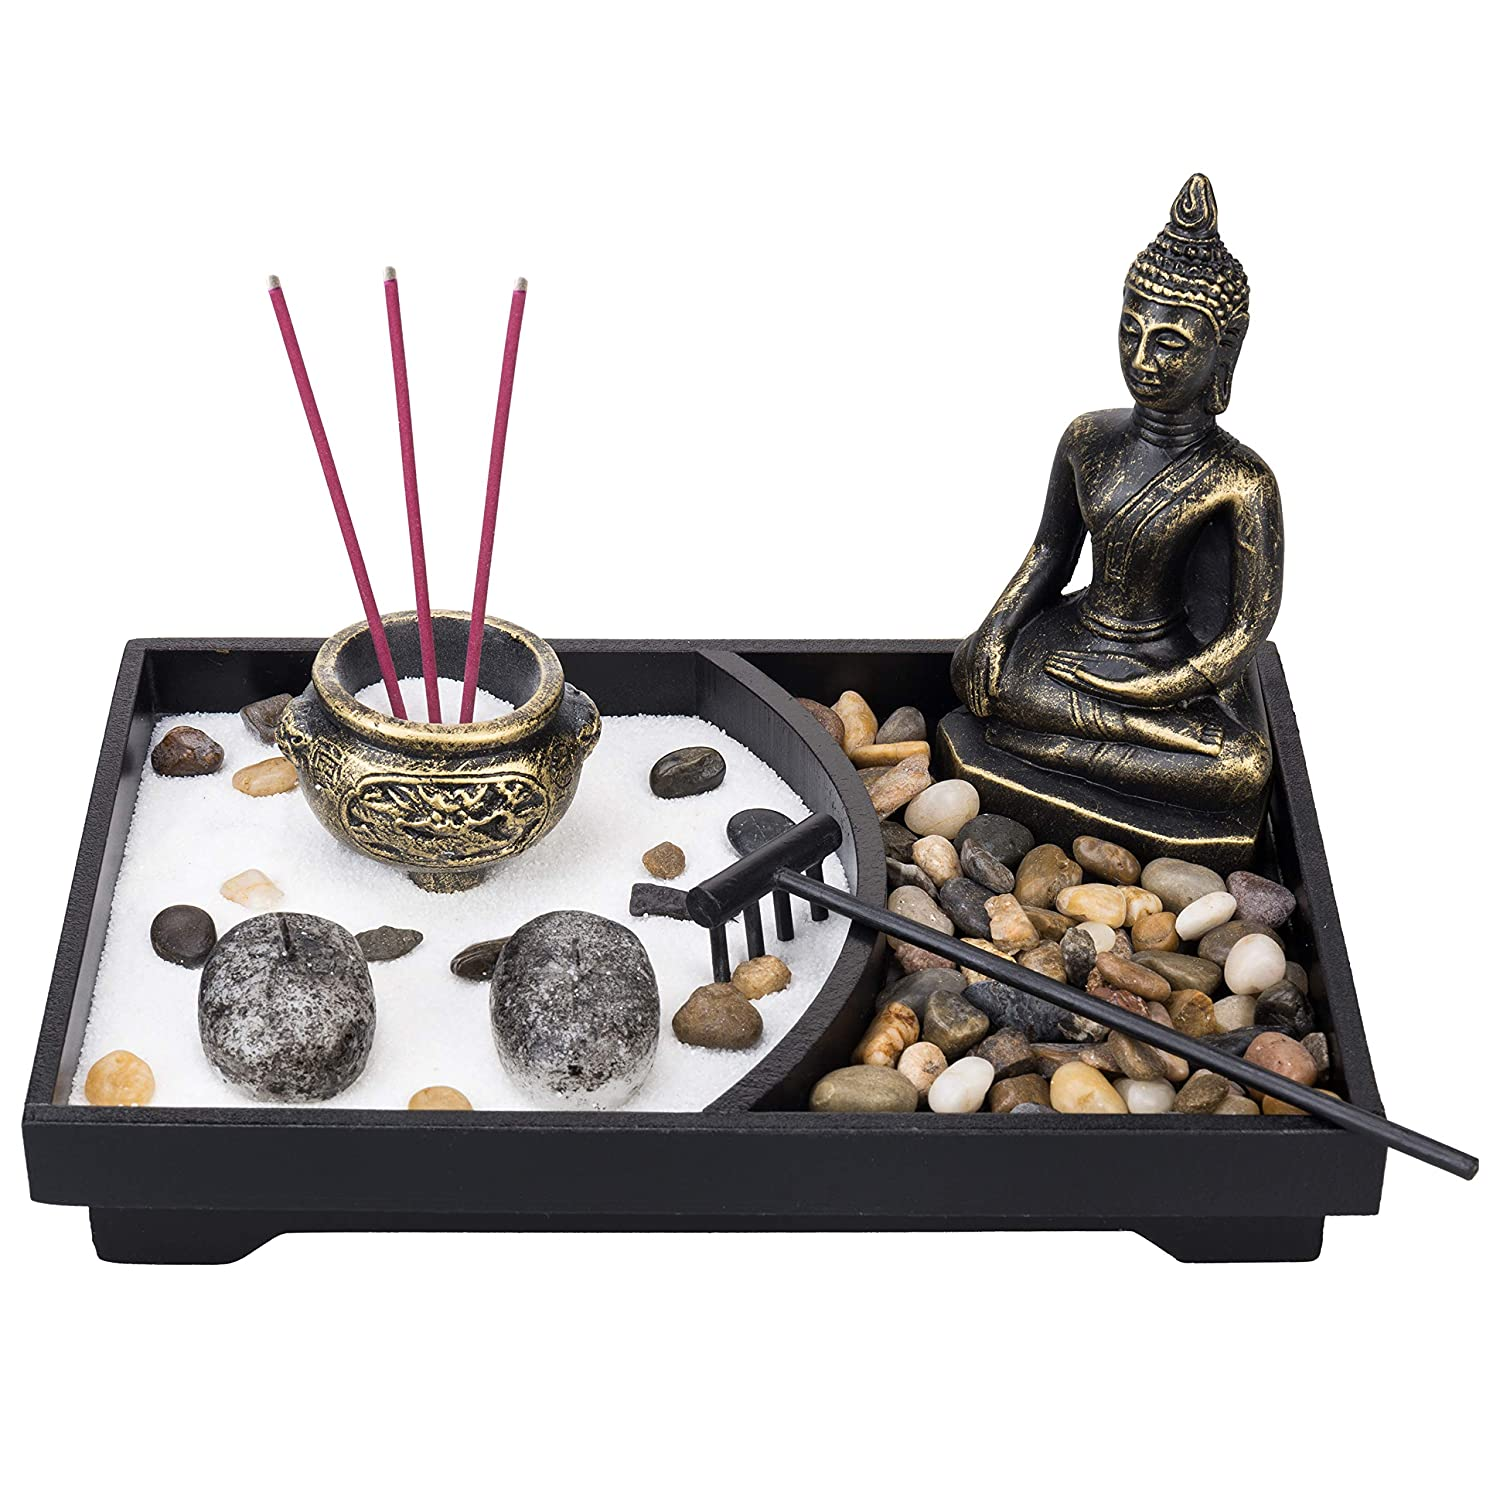 MyGift Buddha Statue Tabletop Zen Garden Kit with Incense Burner